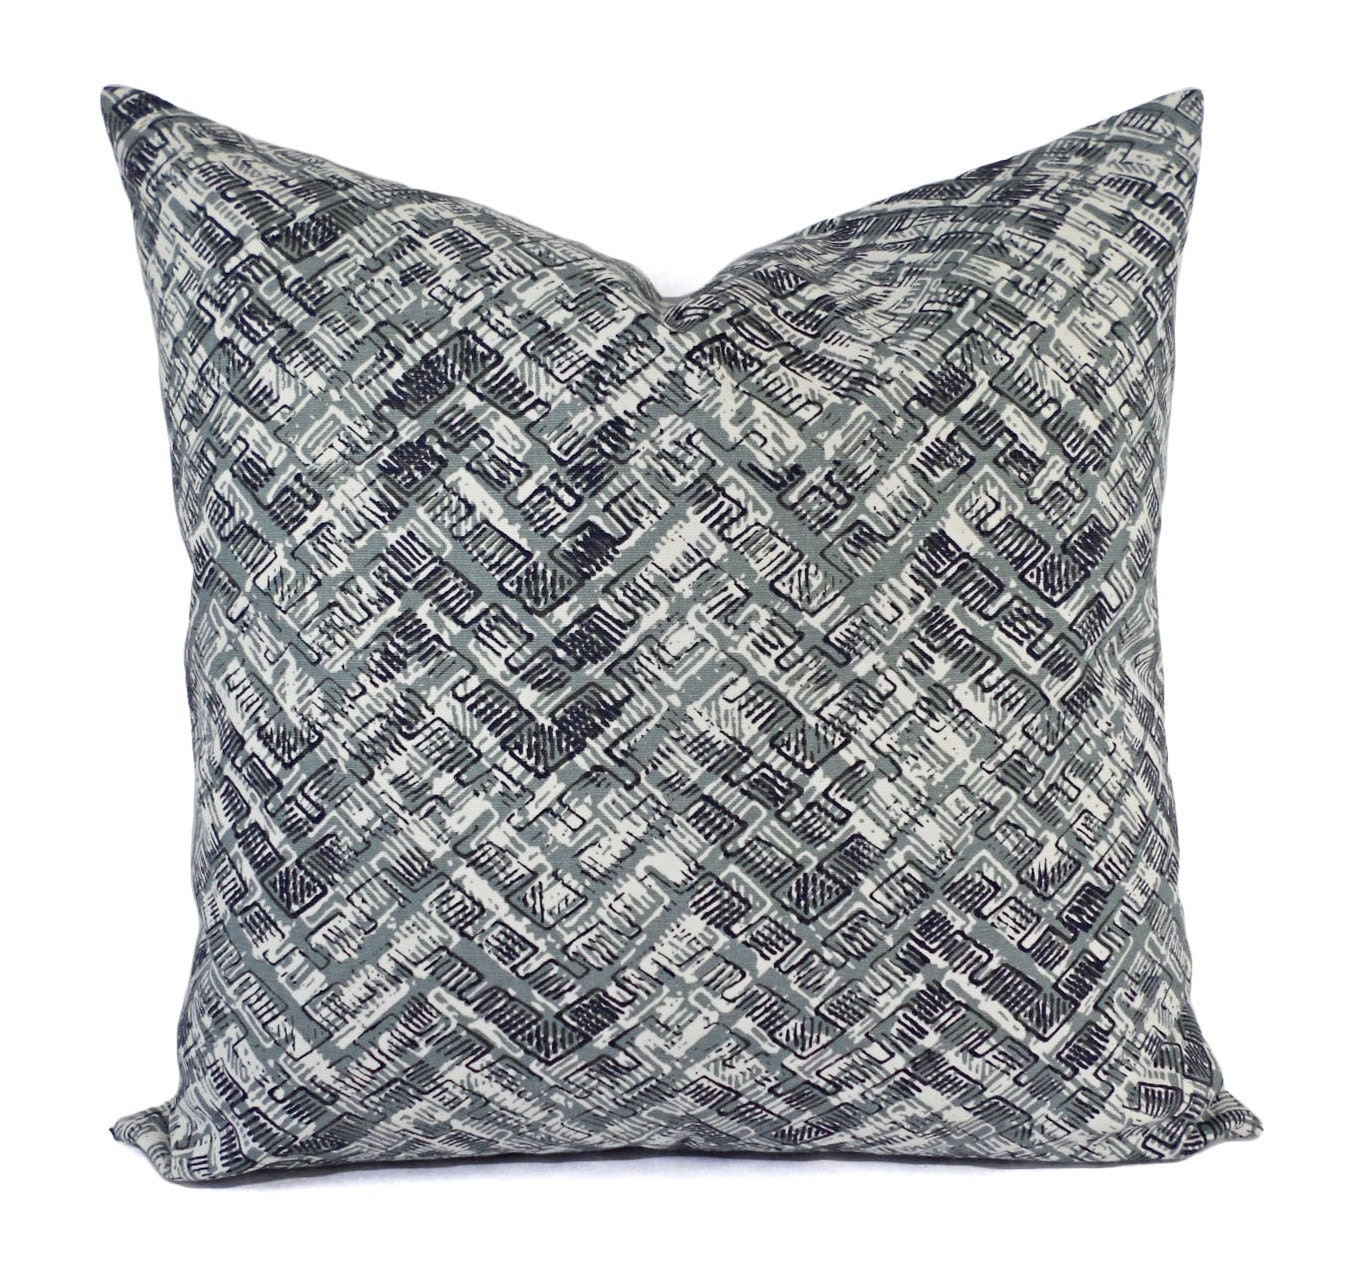 Two pillow covers grey and brown throw pillows modern for Brown and gray throw pillows